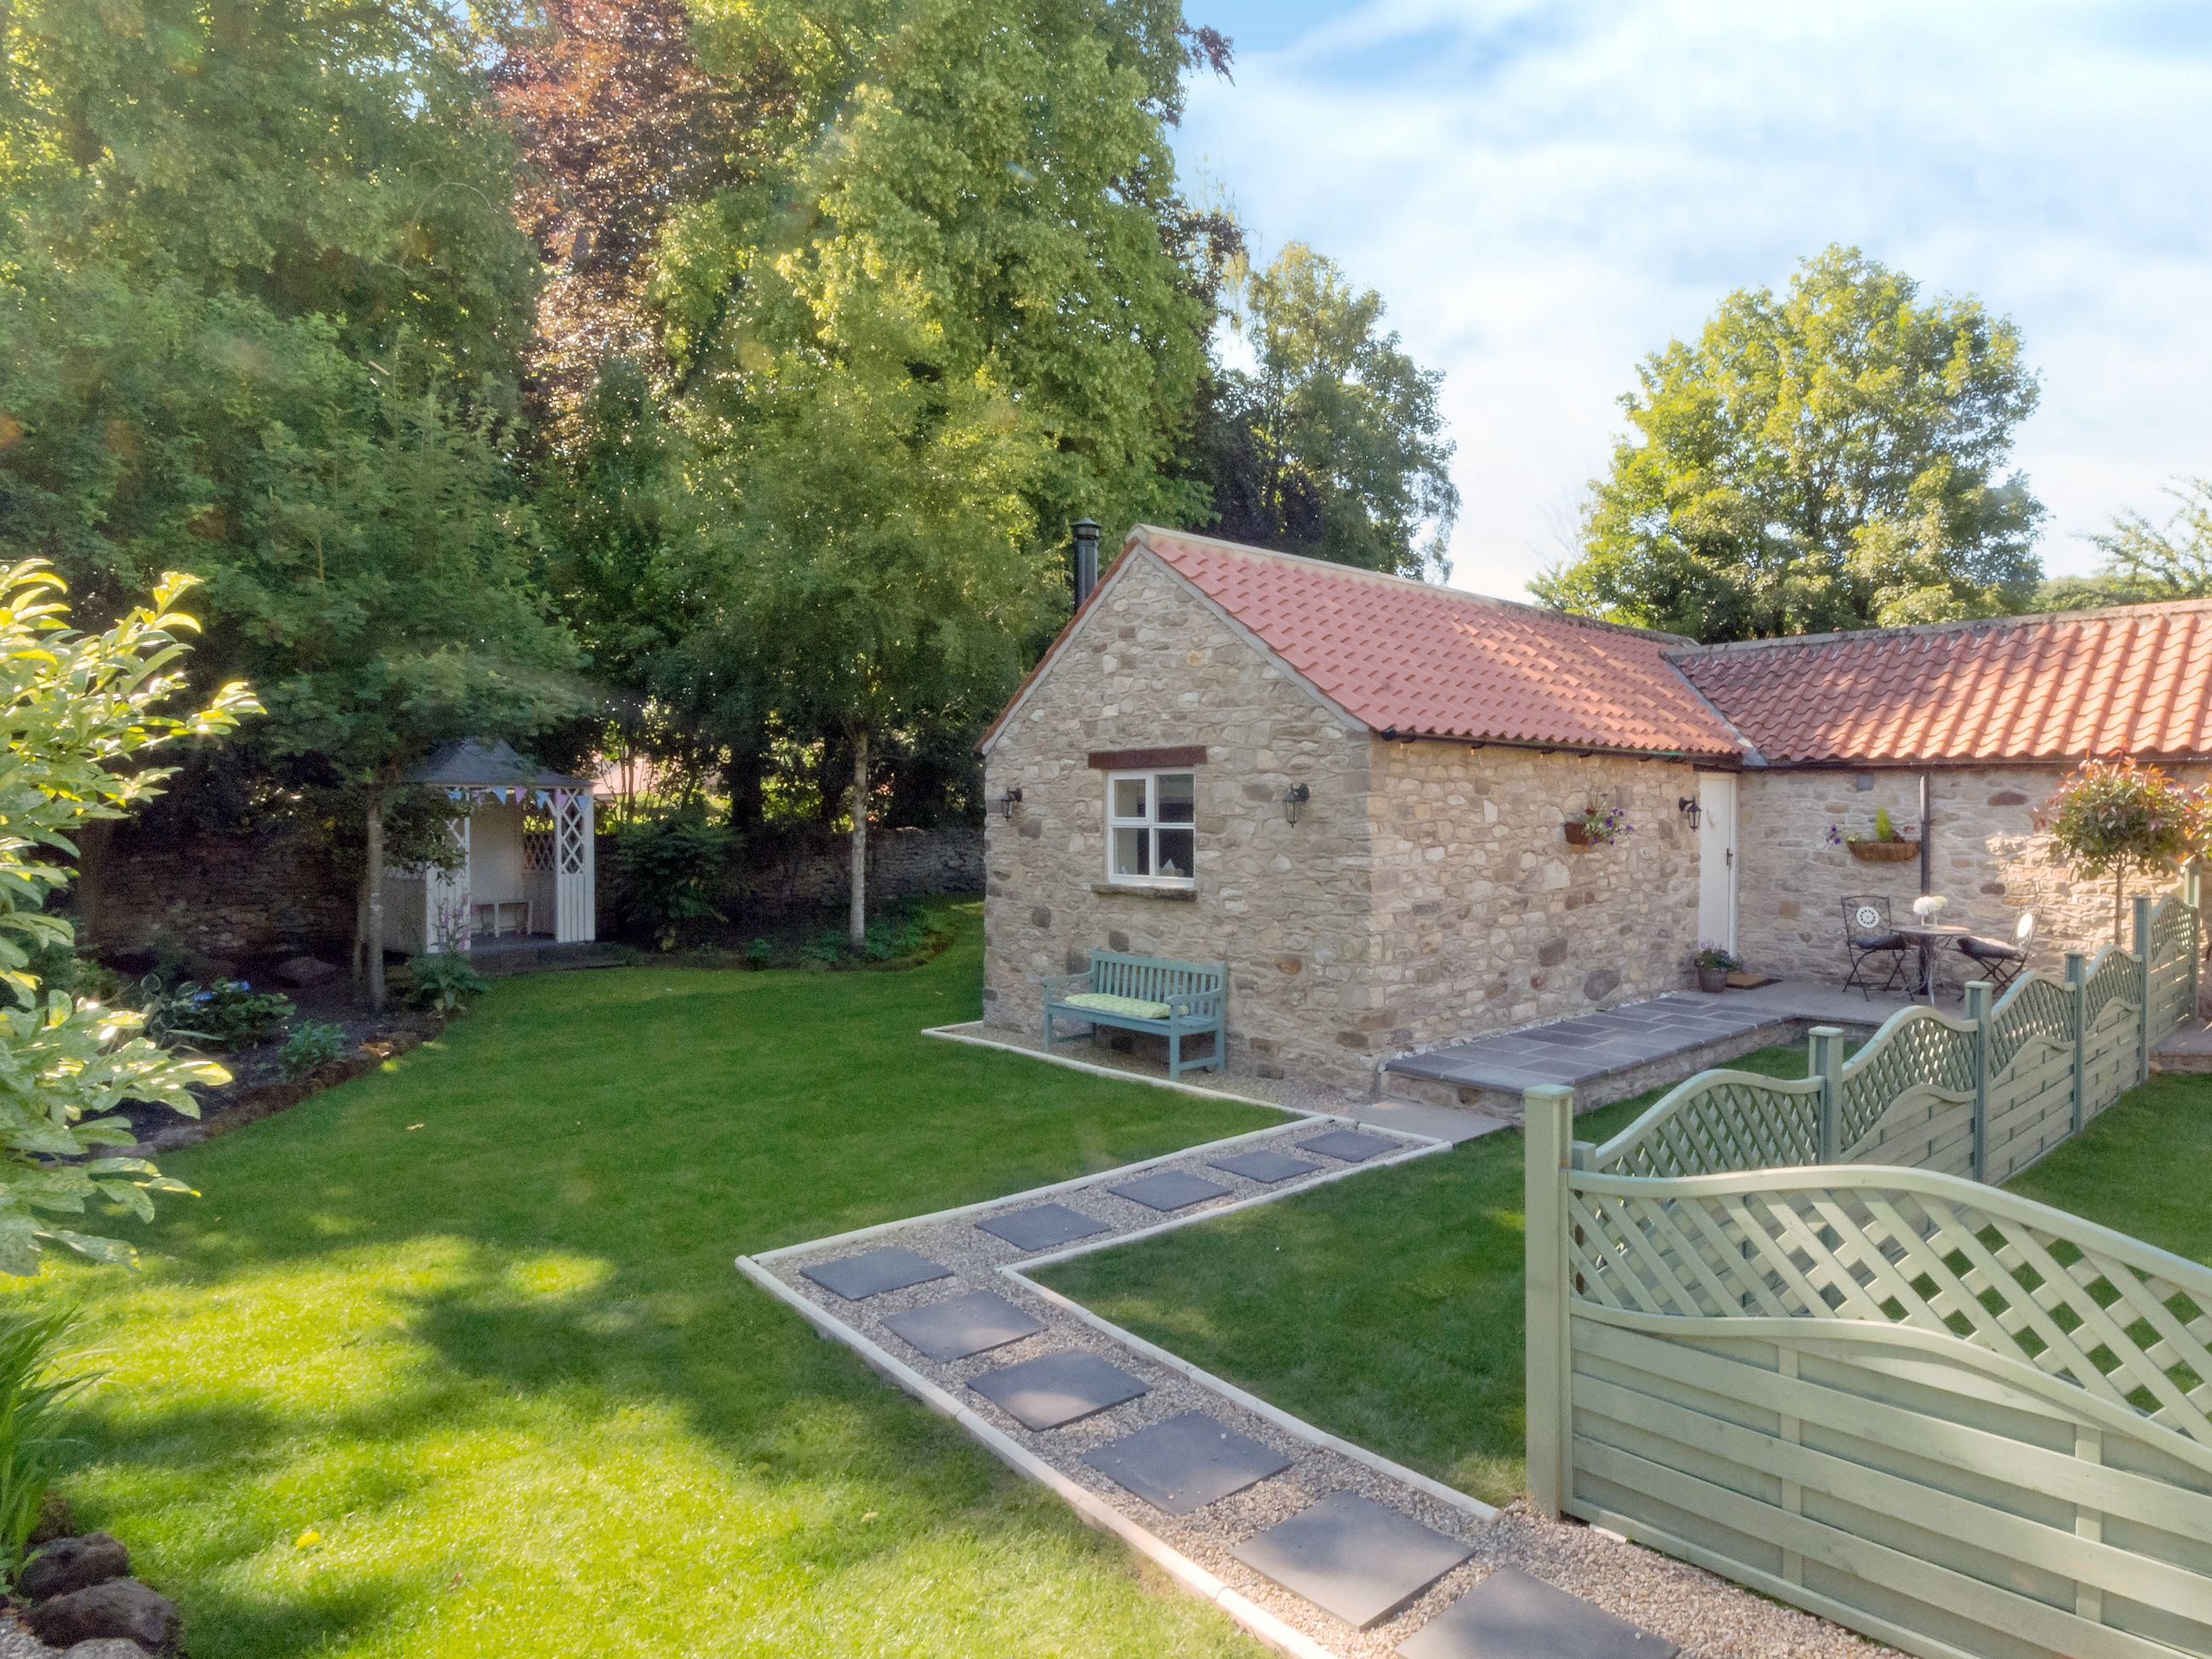 Snuggle up in front of the wood burner whilst admiring the gardens of this quaint holiday cottage.